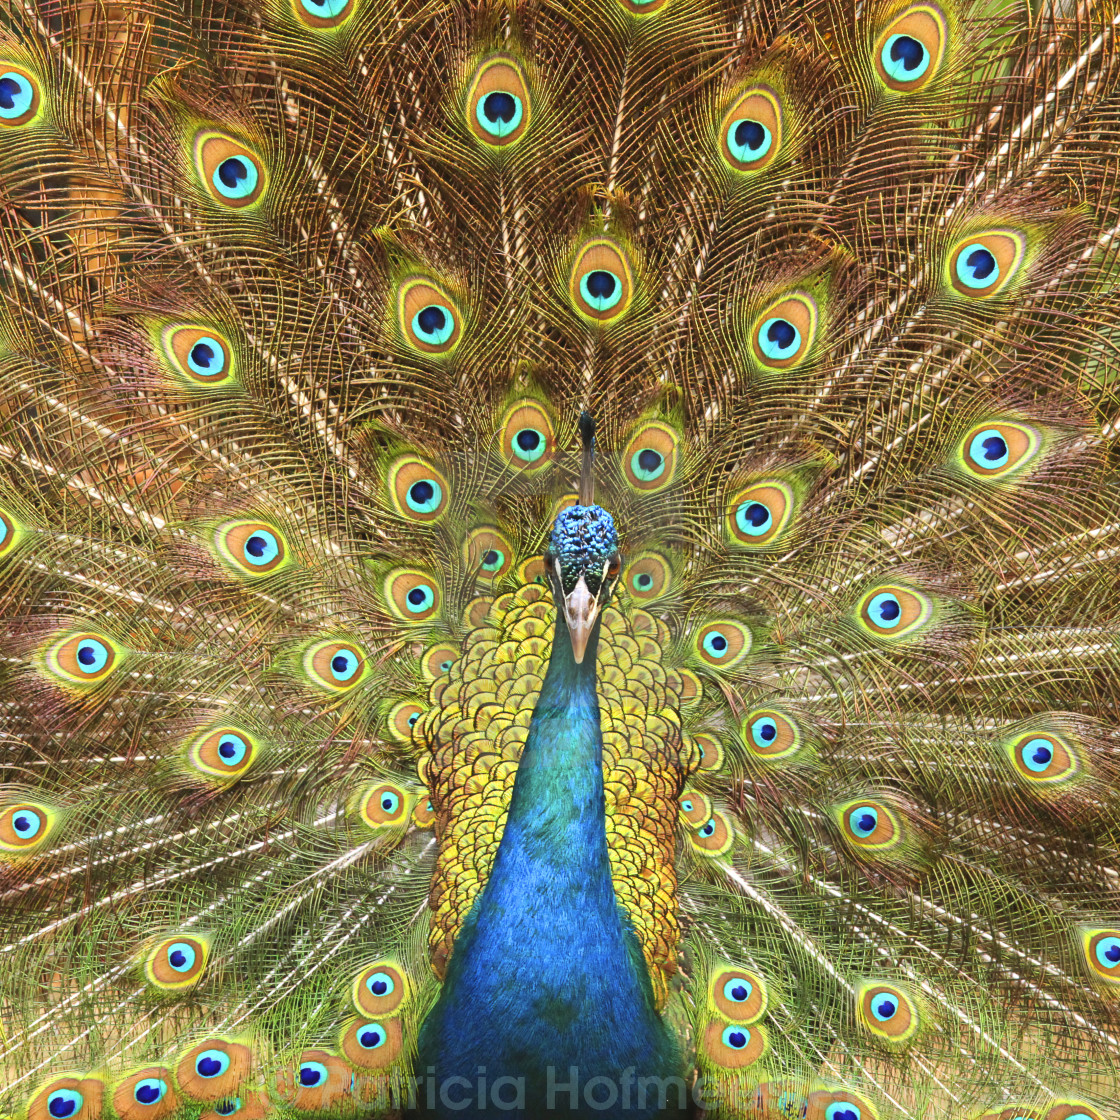 """Peacock showing its feathers XL"" stock image"